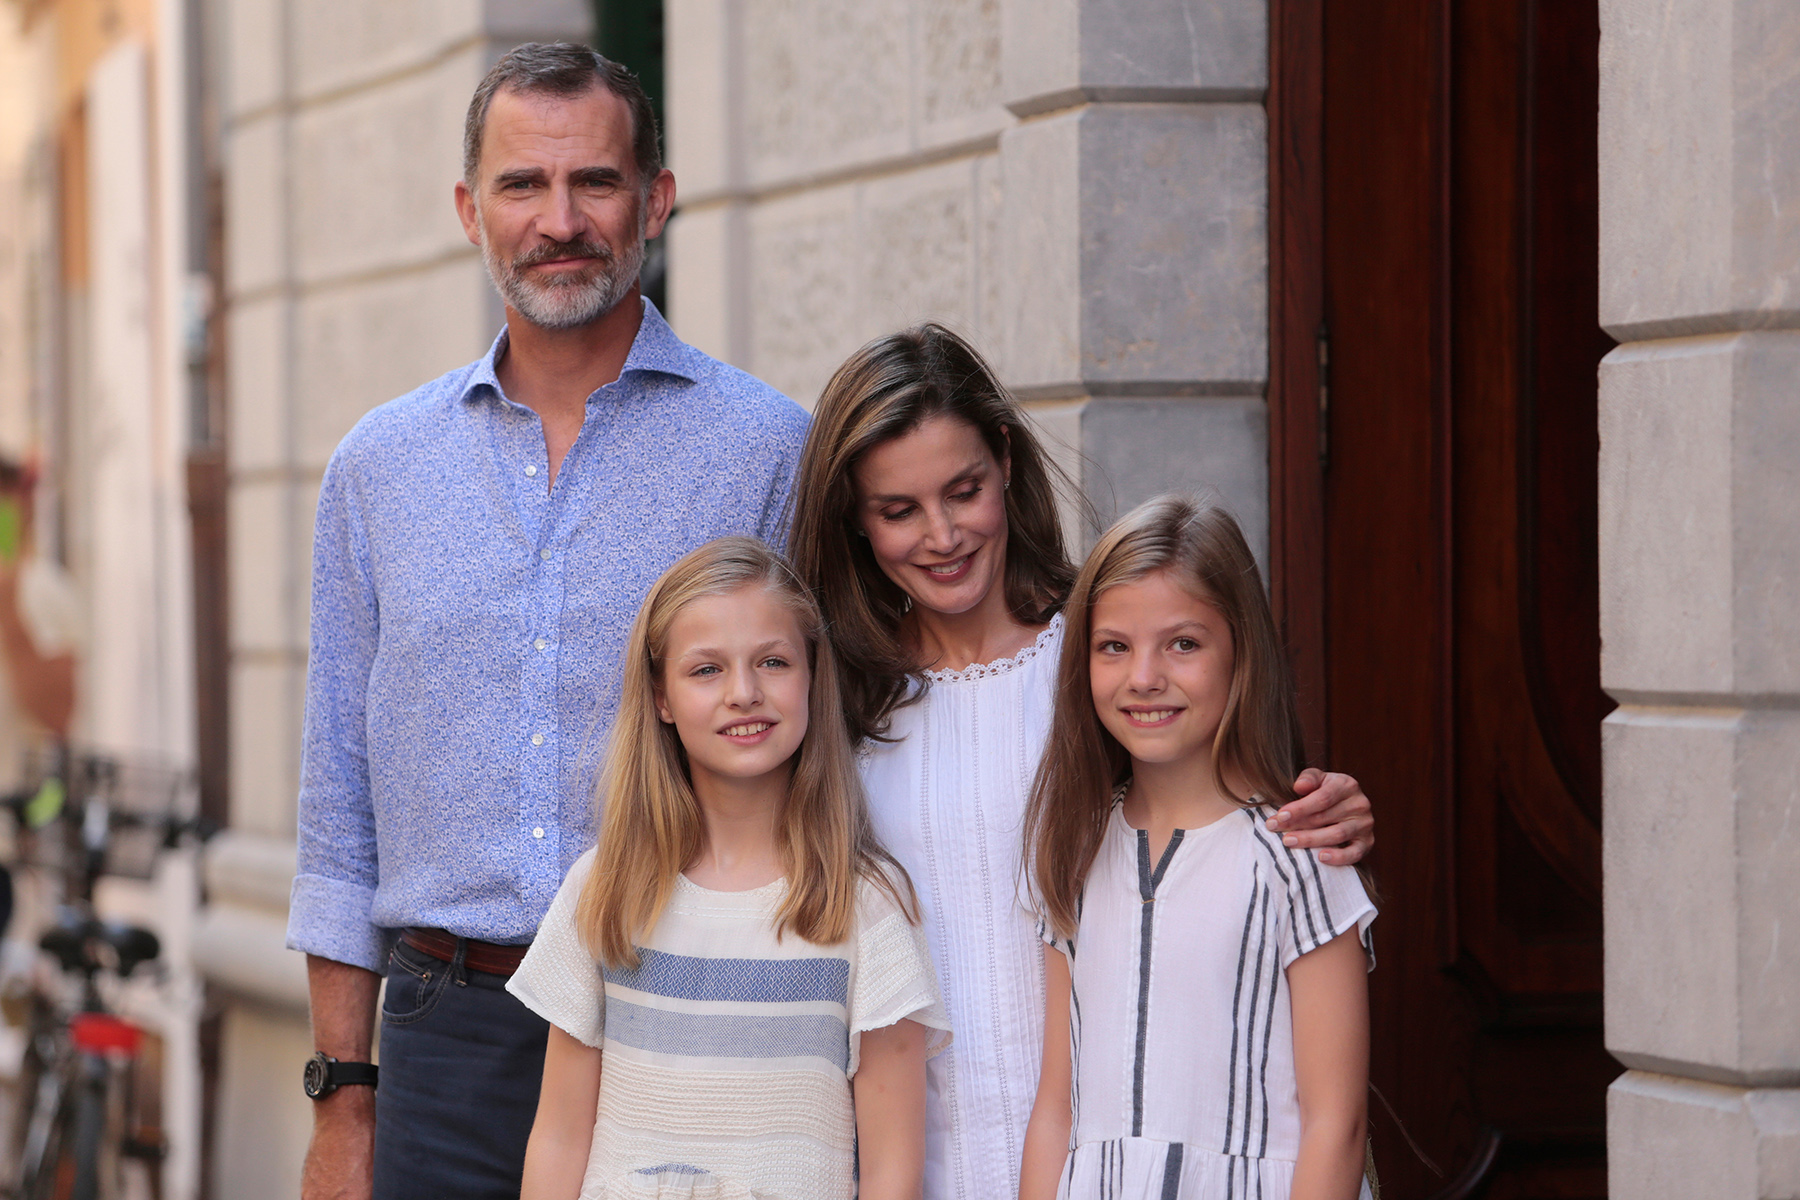 Spanish royal family posing for a photograph